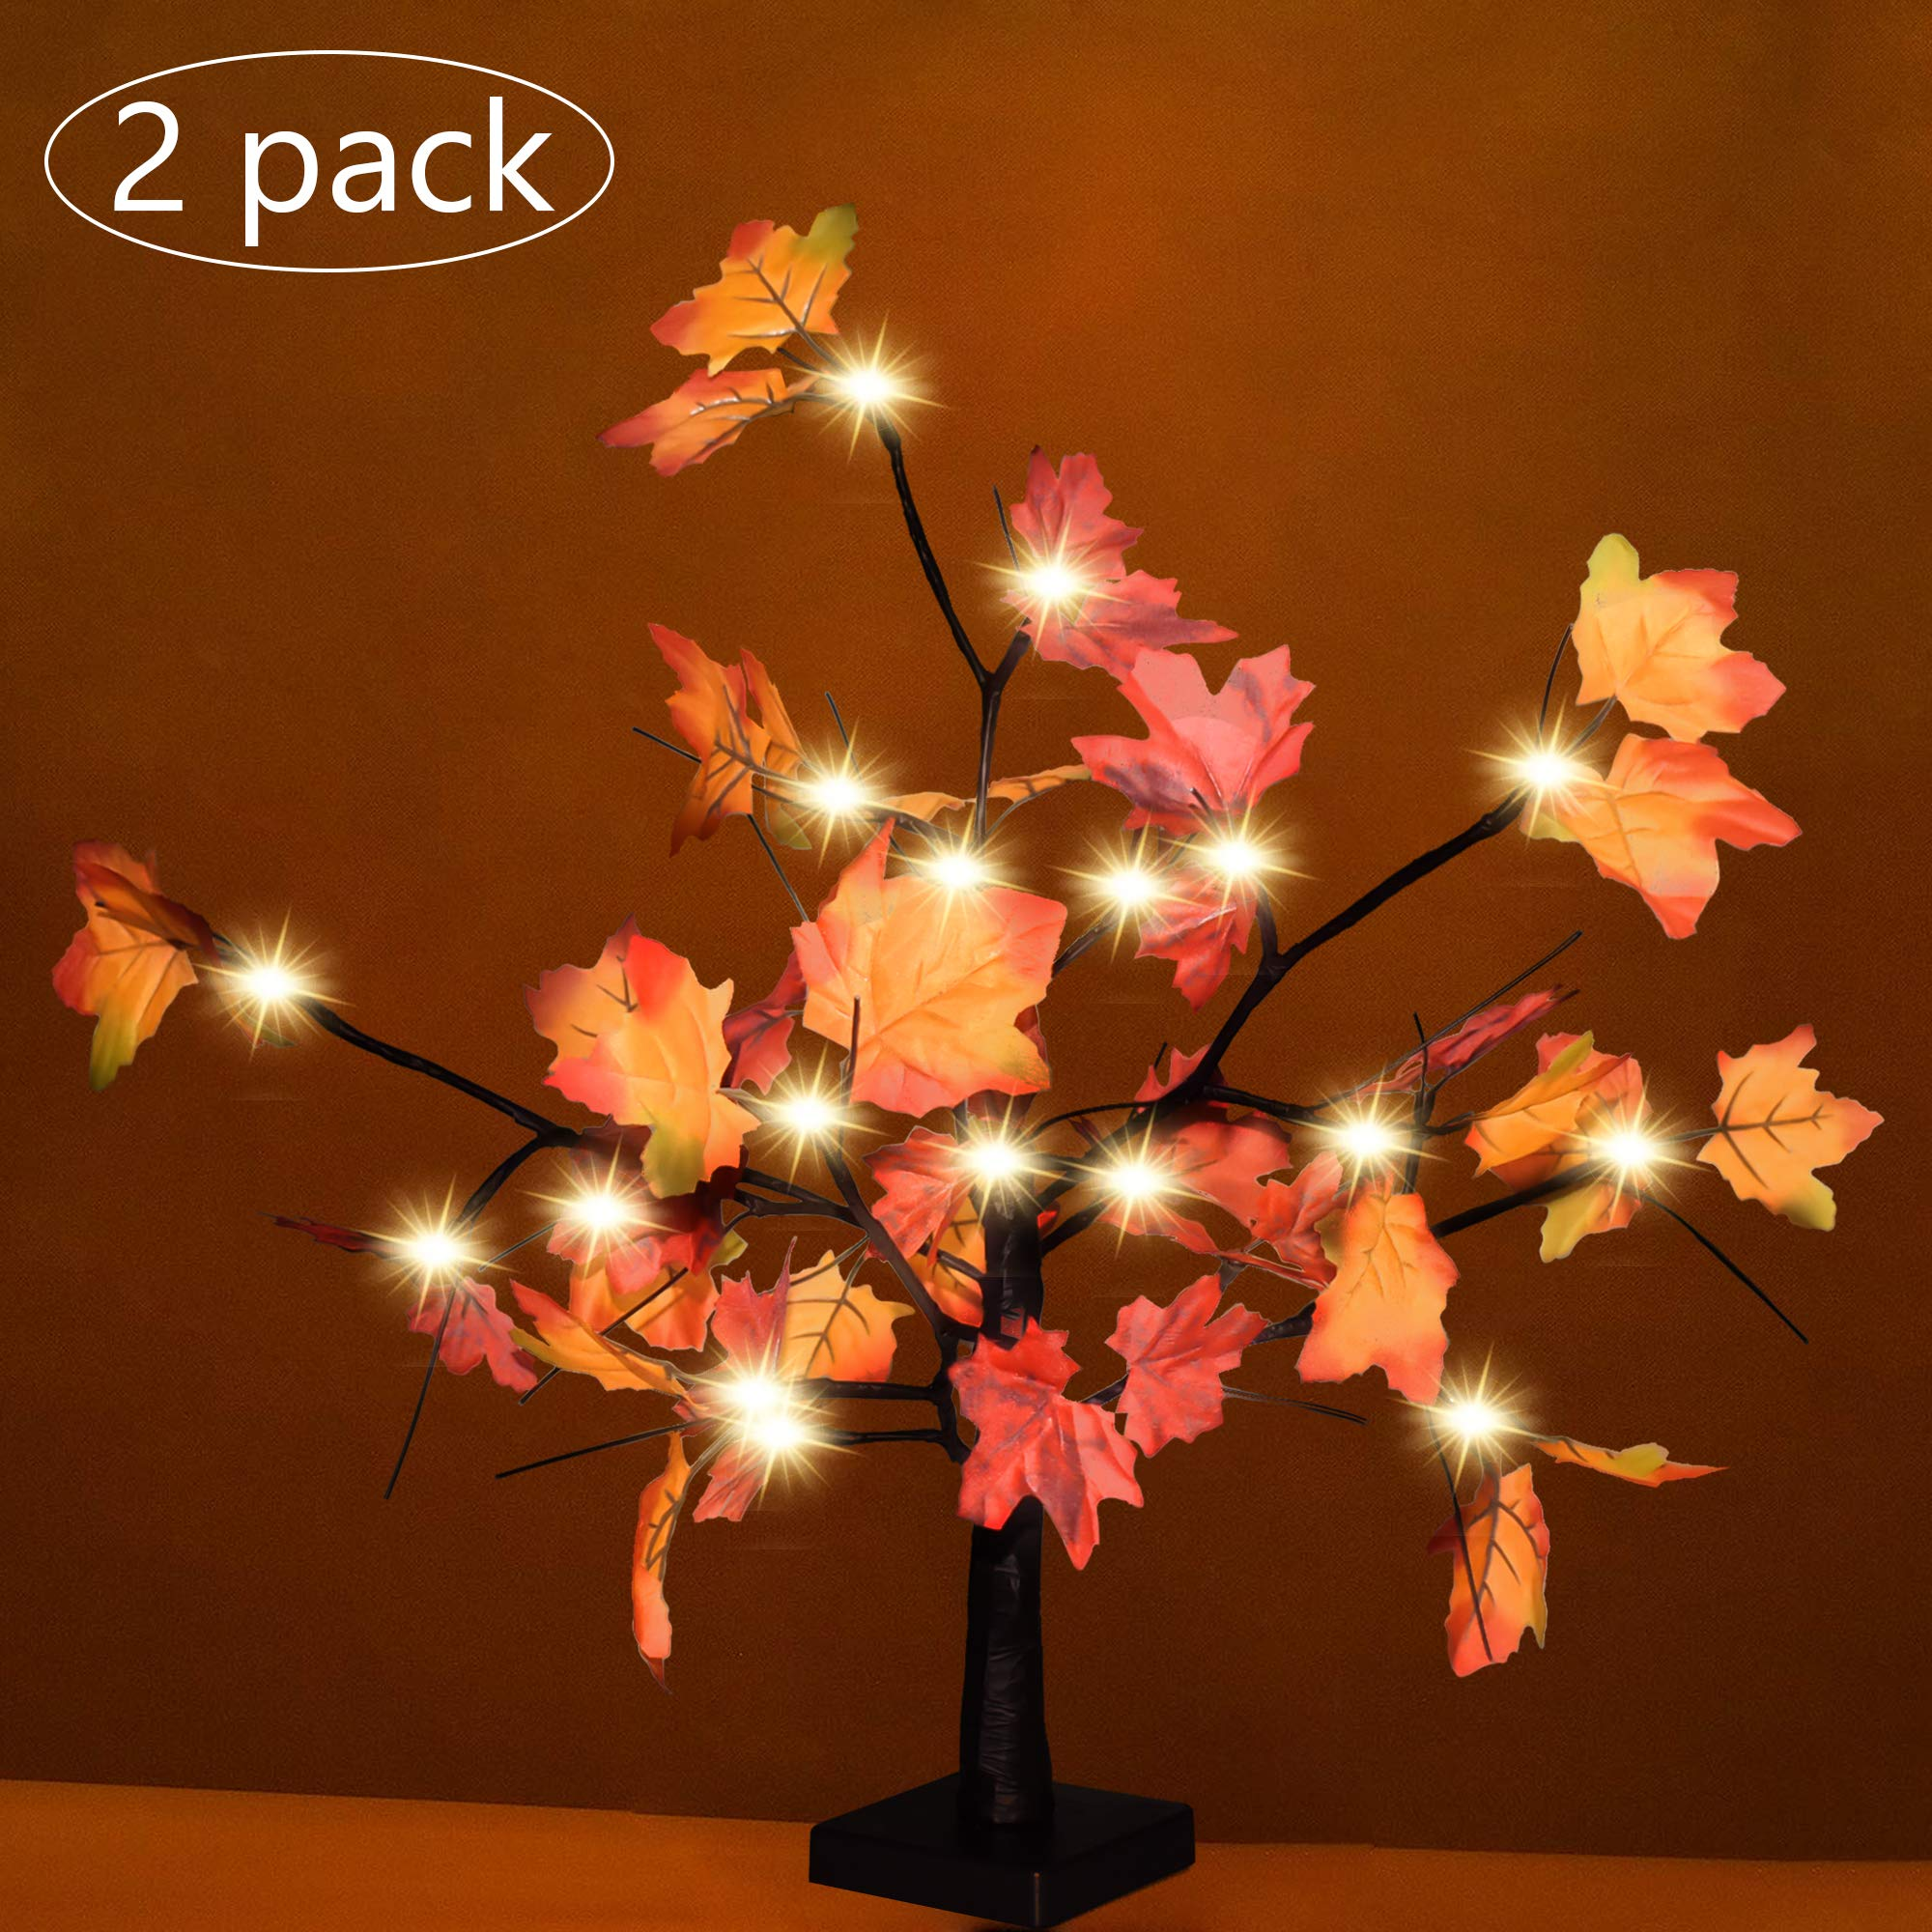 """Risunpet 2 Pack Maple Tree Lights, Lighted Maple Tree with 100pcs Maple Leaves, Fall Tree Decoration 23"""" 24 LED Battery Operated Table Lights for Thanksgiving Christmas Party Gift"""